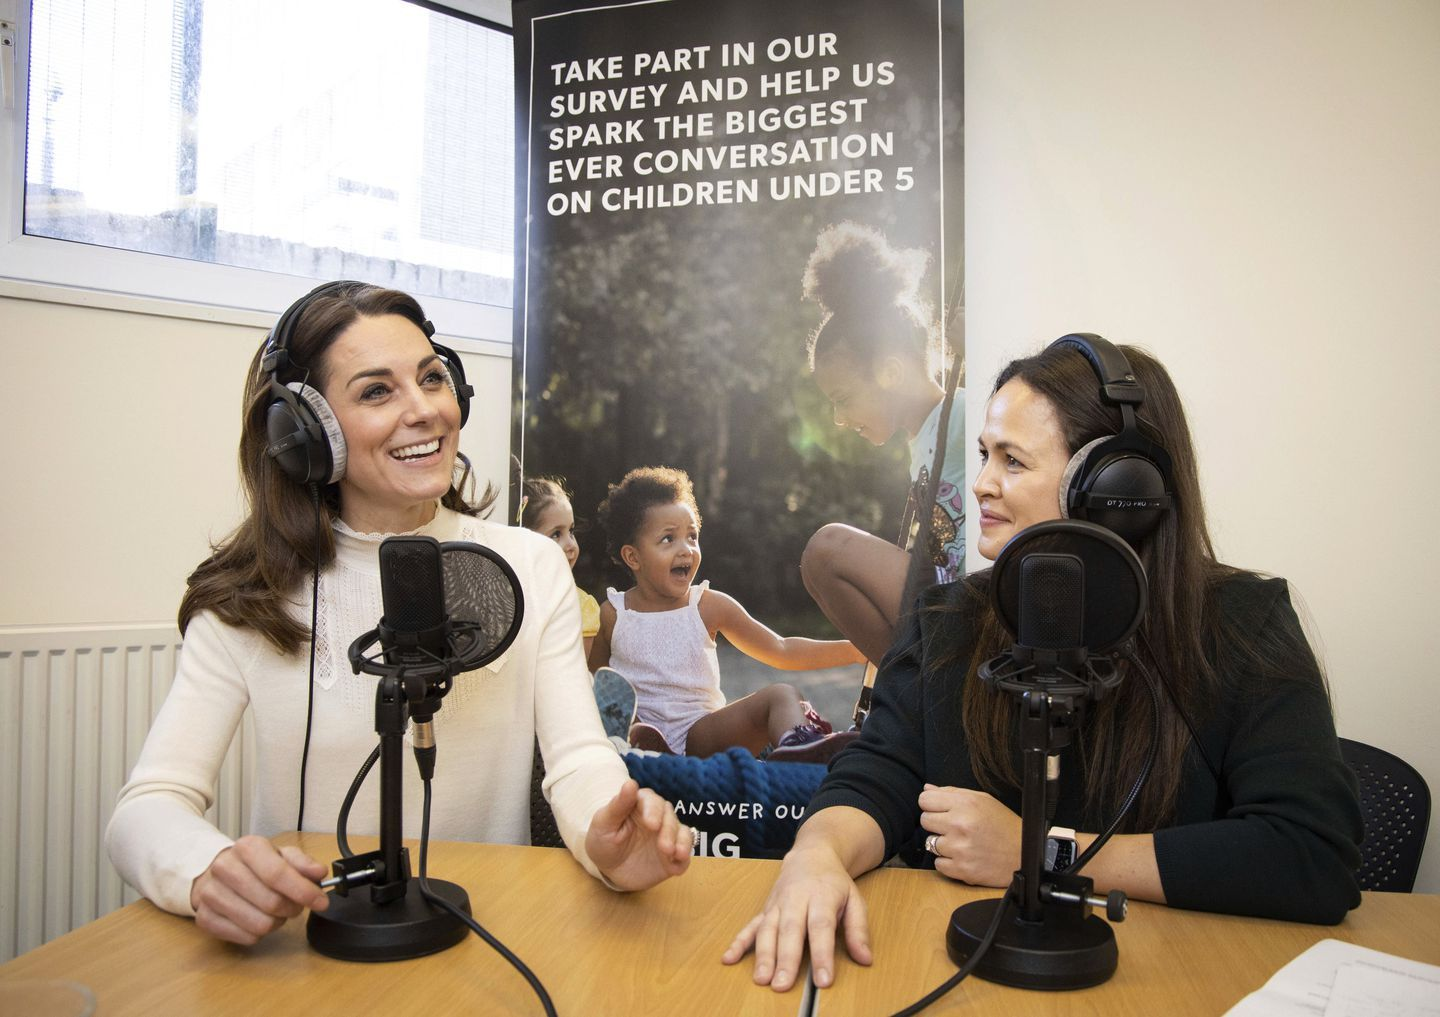 4 takeaways from the Duchess of Cambridge's surprisingly